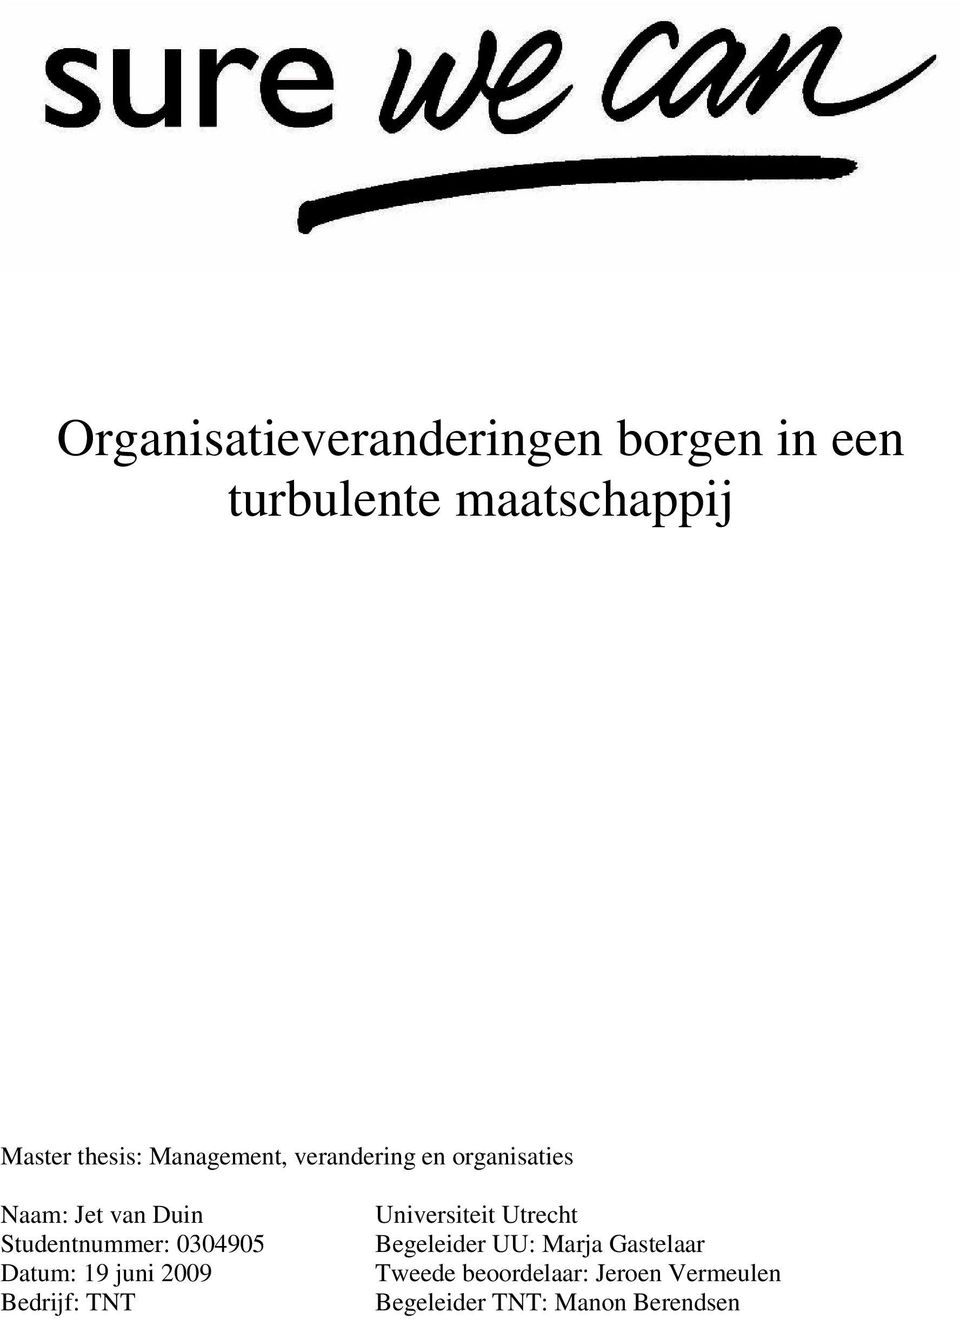 Masters thesis writer maastricht university - research paper for sale online